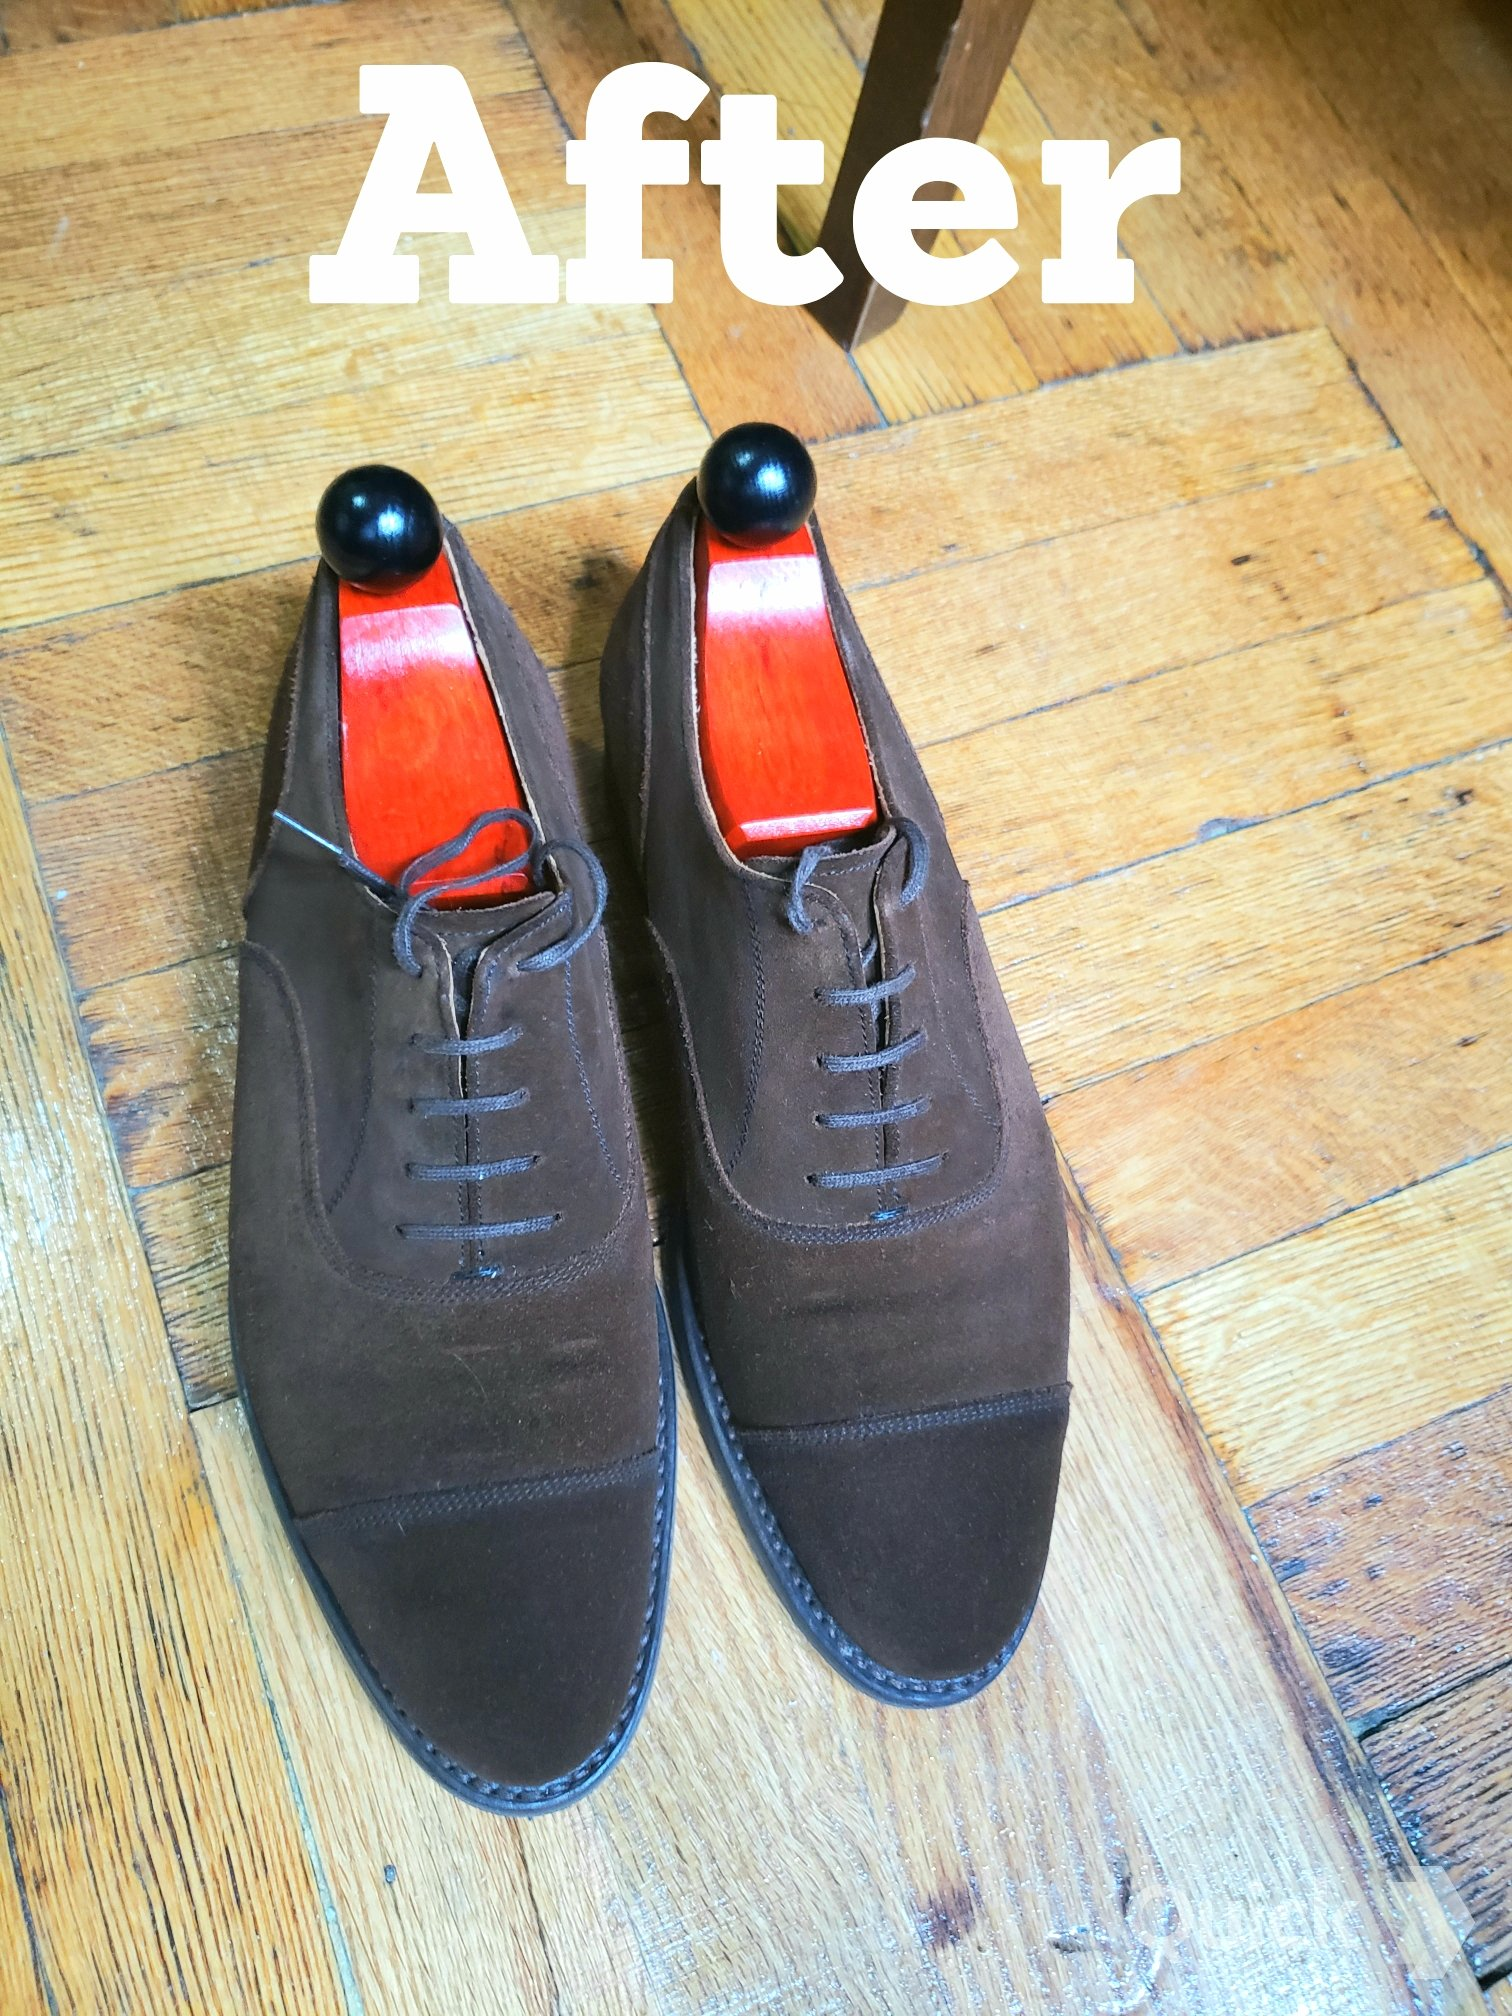 The Best Rain Weather Shoe - Brown Suede with Rubber Sole